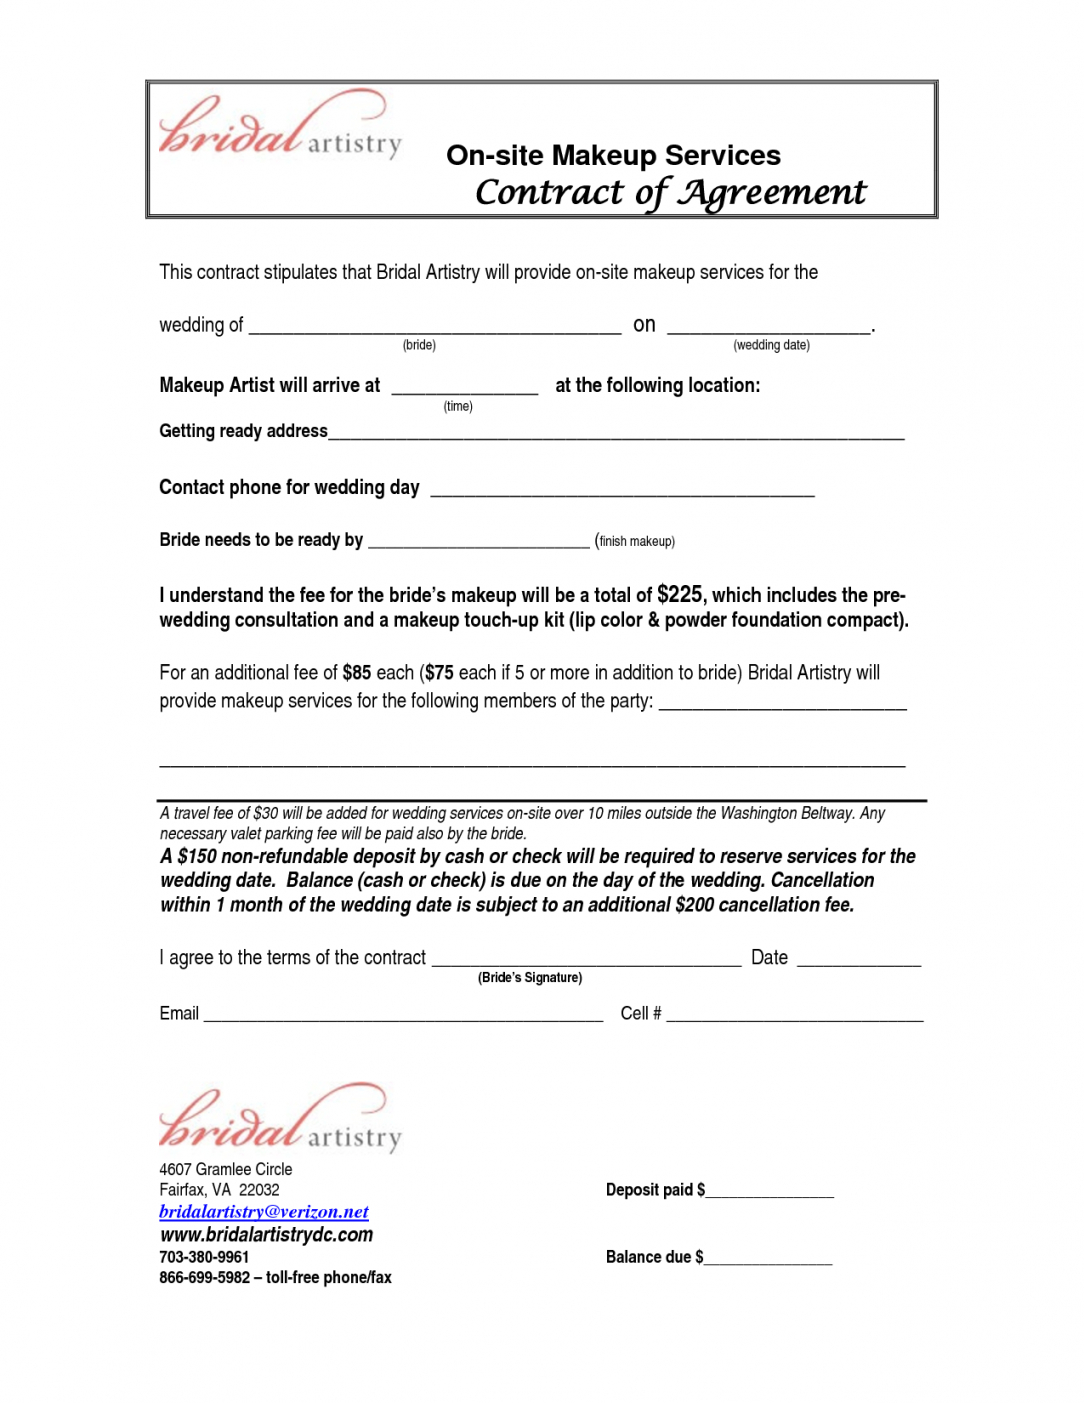 bridalhaircotract  site makeup services contract agreement this mess contract agreement